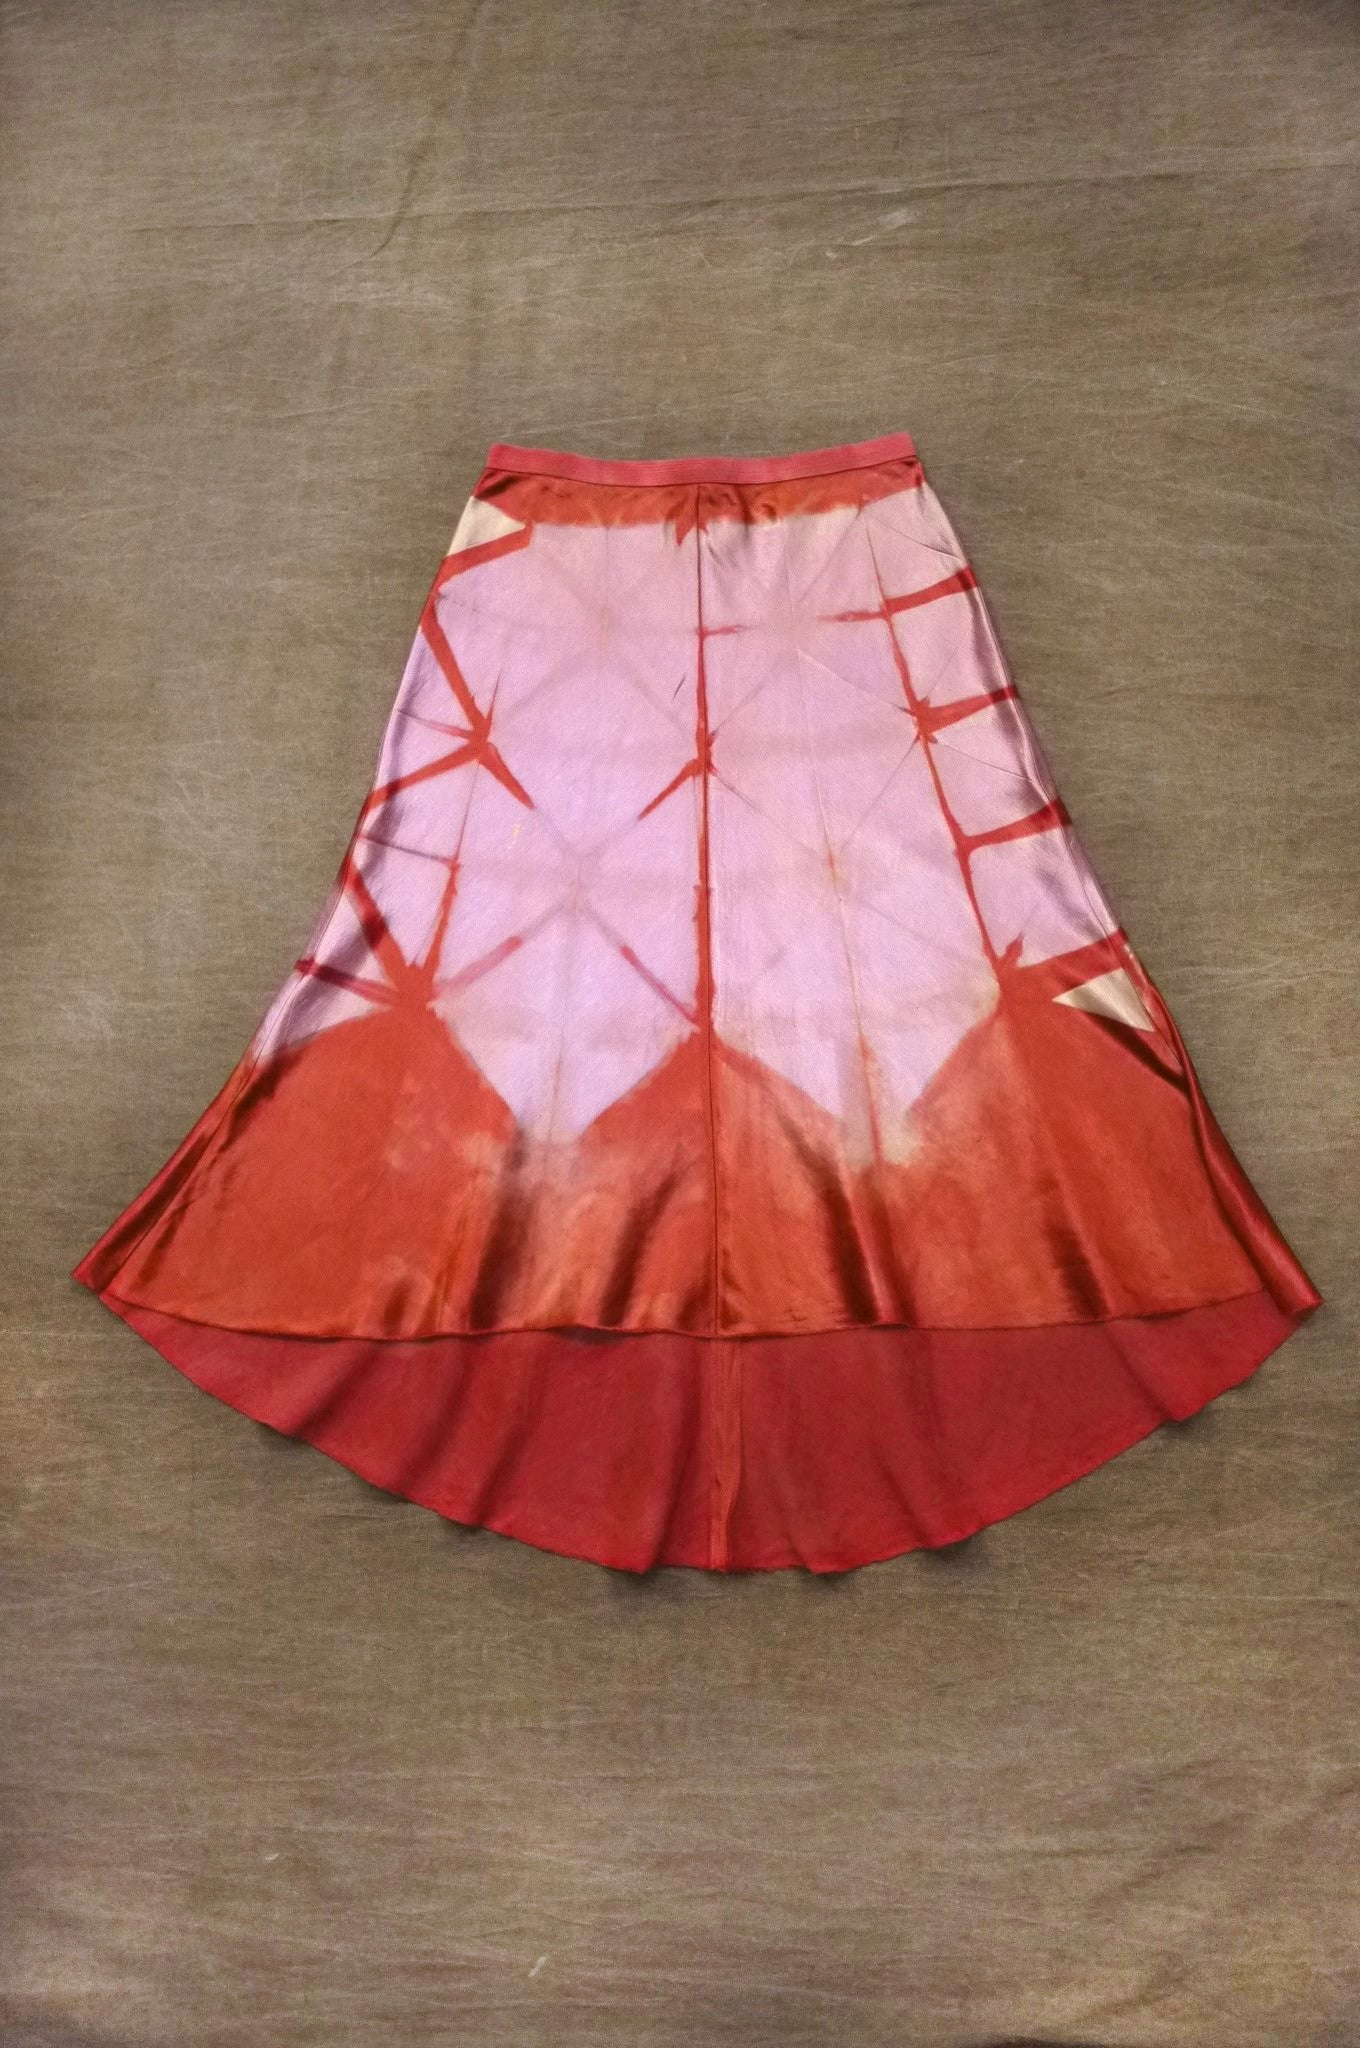 Geode Skirt in Redbud